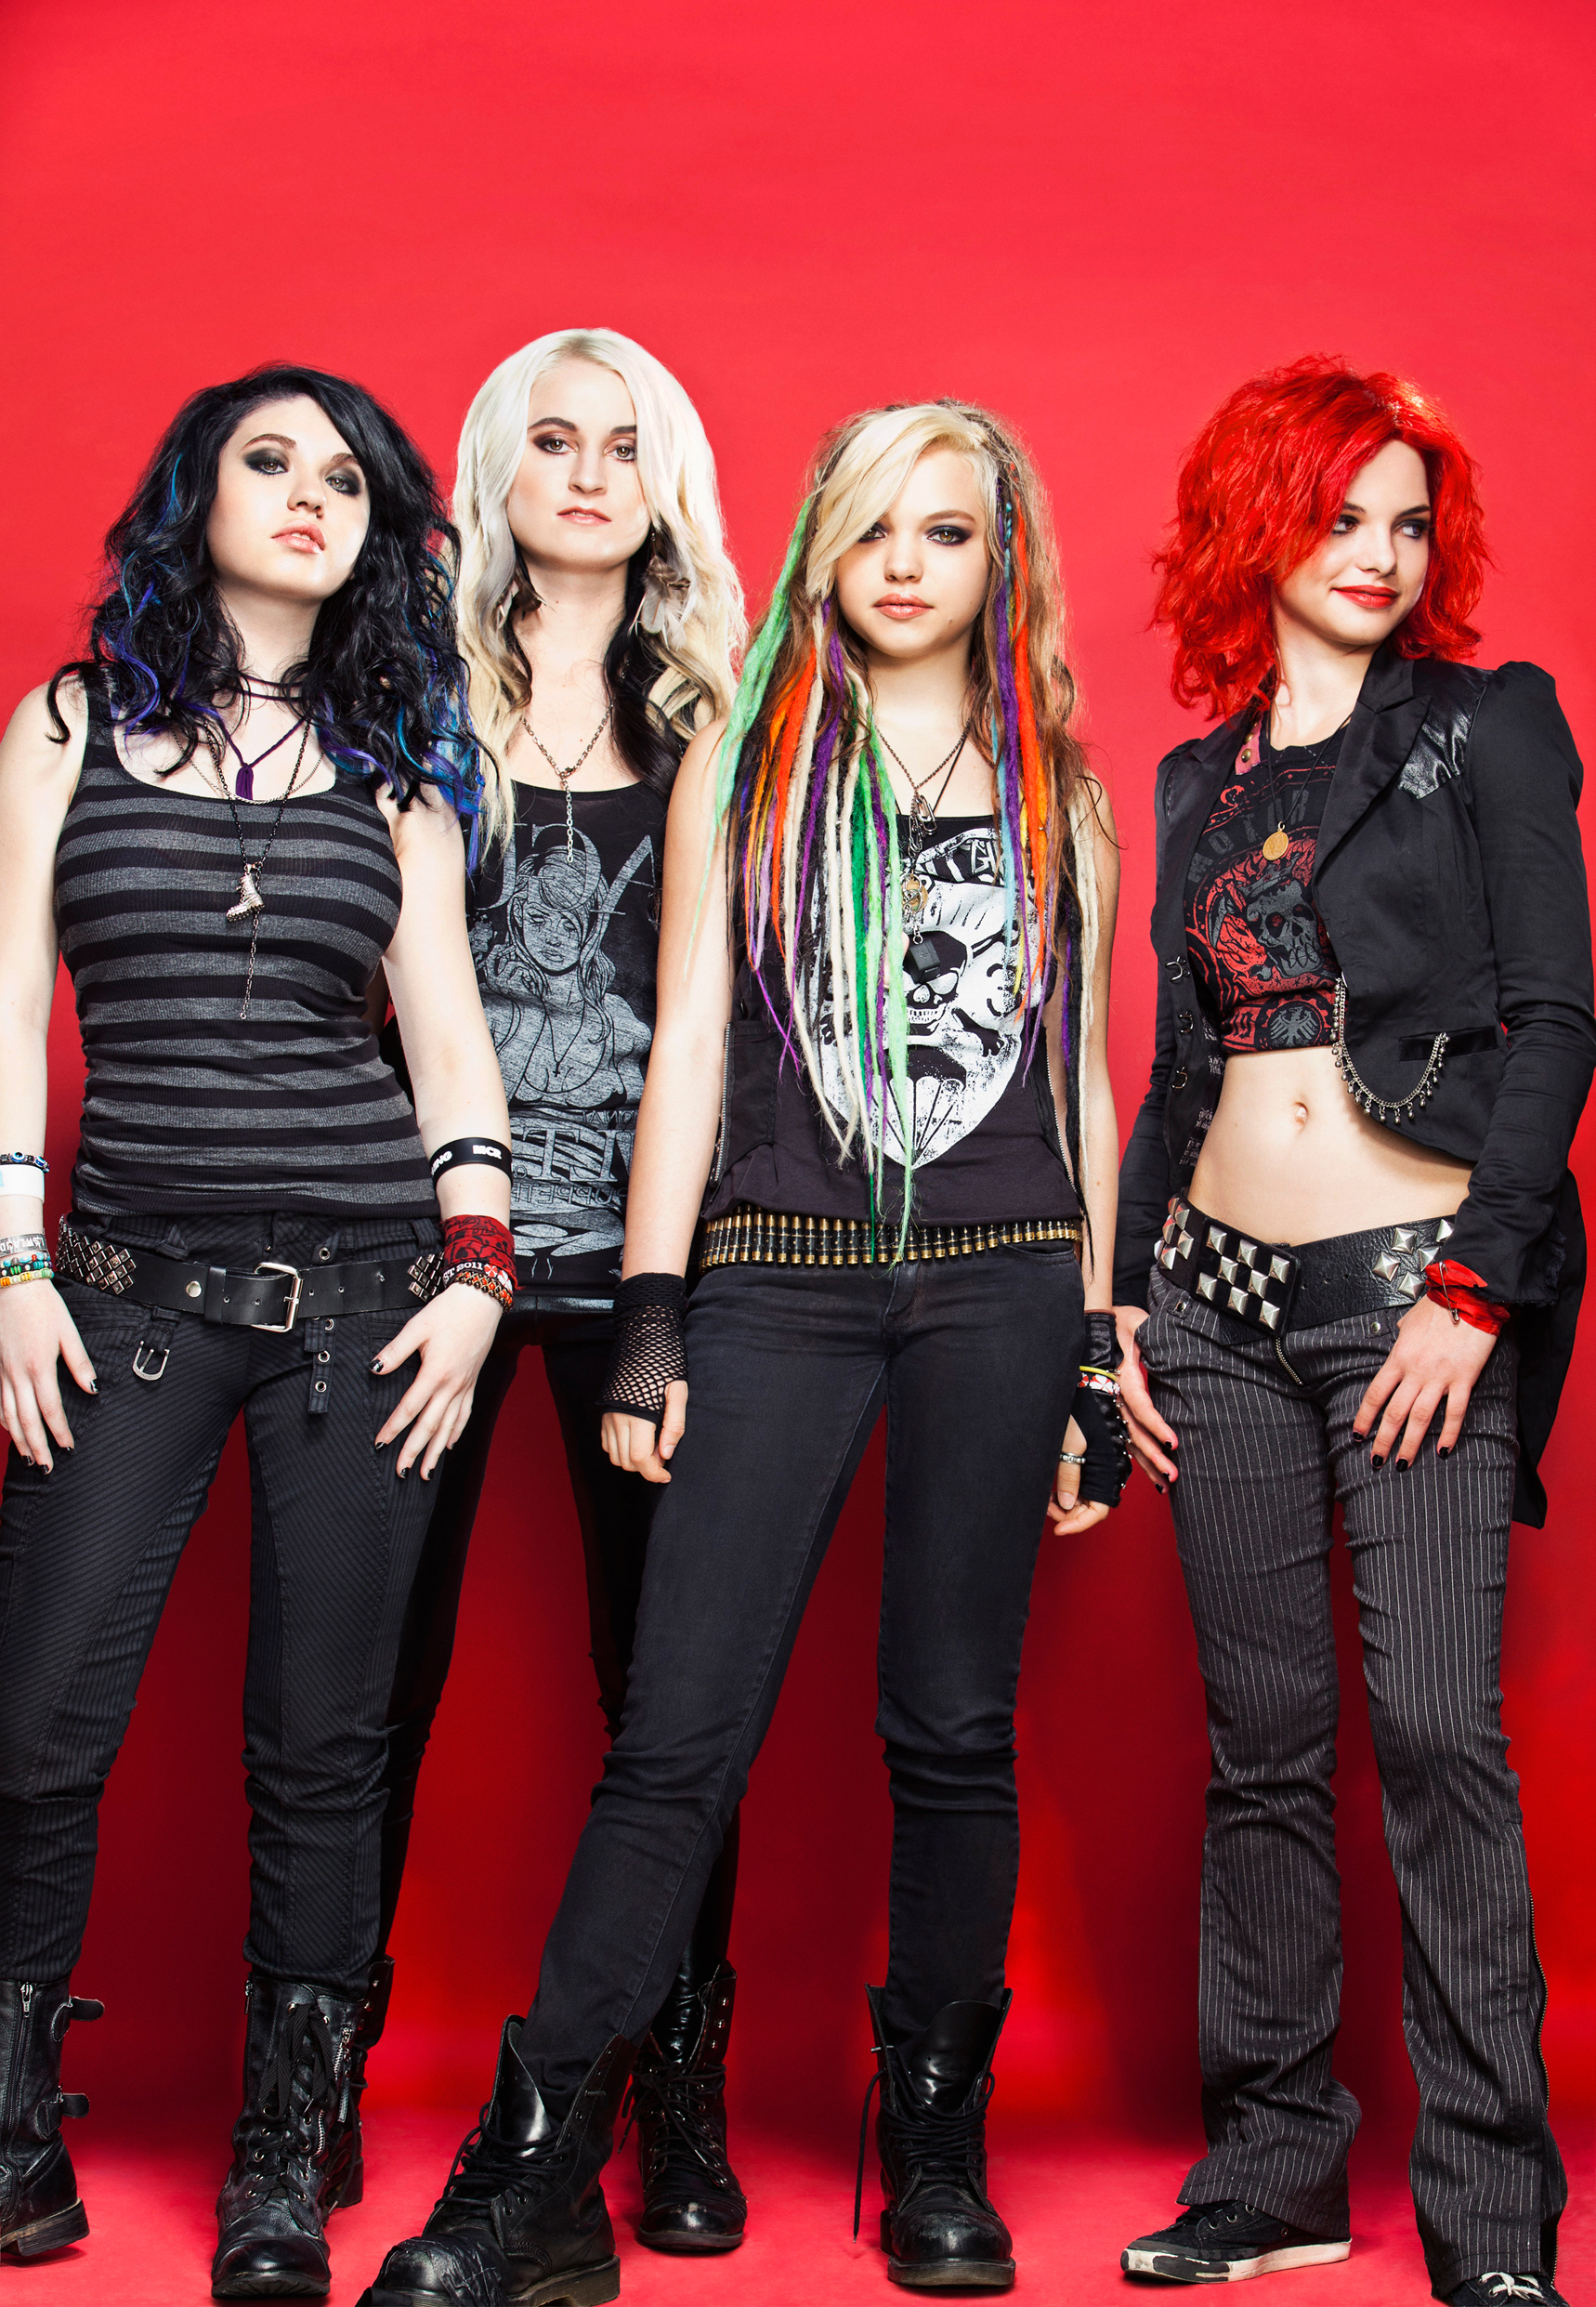 Cherri Bomb Band Photo